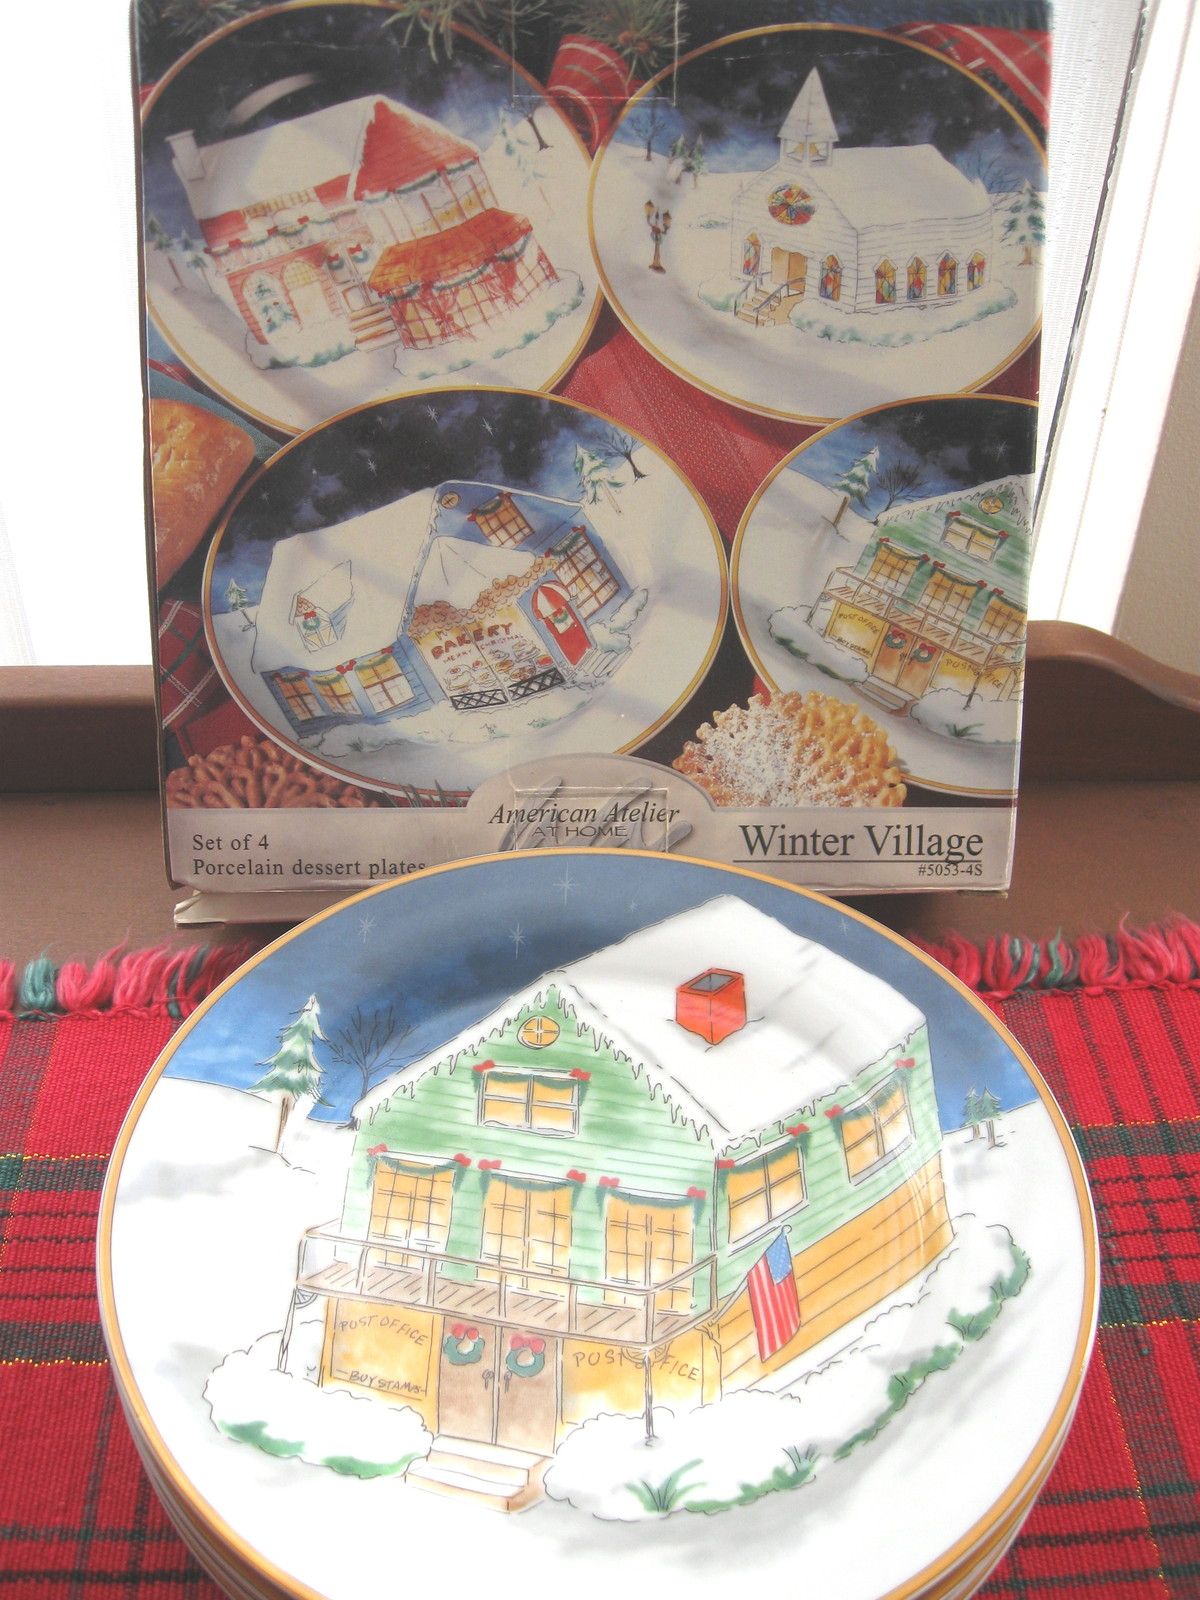 Set of Four (4) American Atelier Winter Village Porcelain Dessert Plates - New i